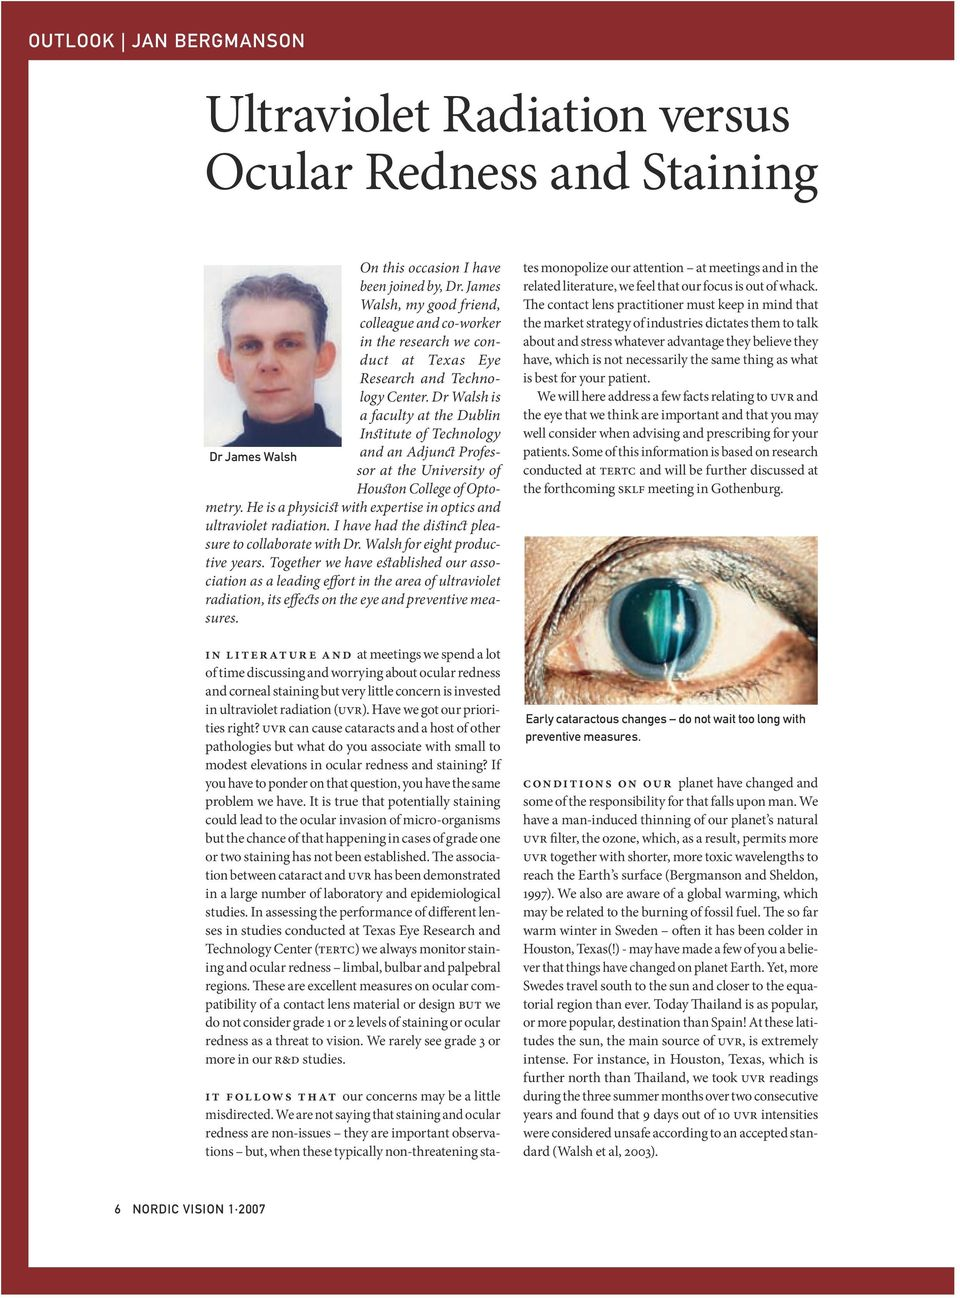 Dr Walsh is a faculty at the Dublin Institute of Technology Dr James Walsh and an Adjunct Professor at the University of Houston College of Optometry.